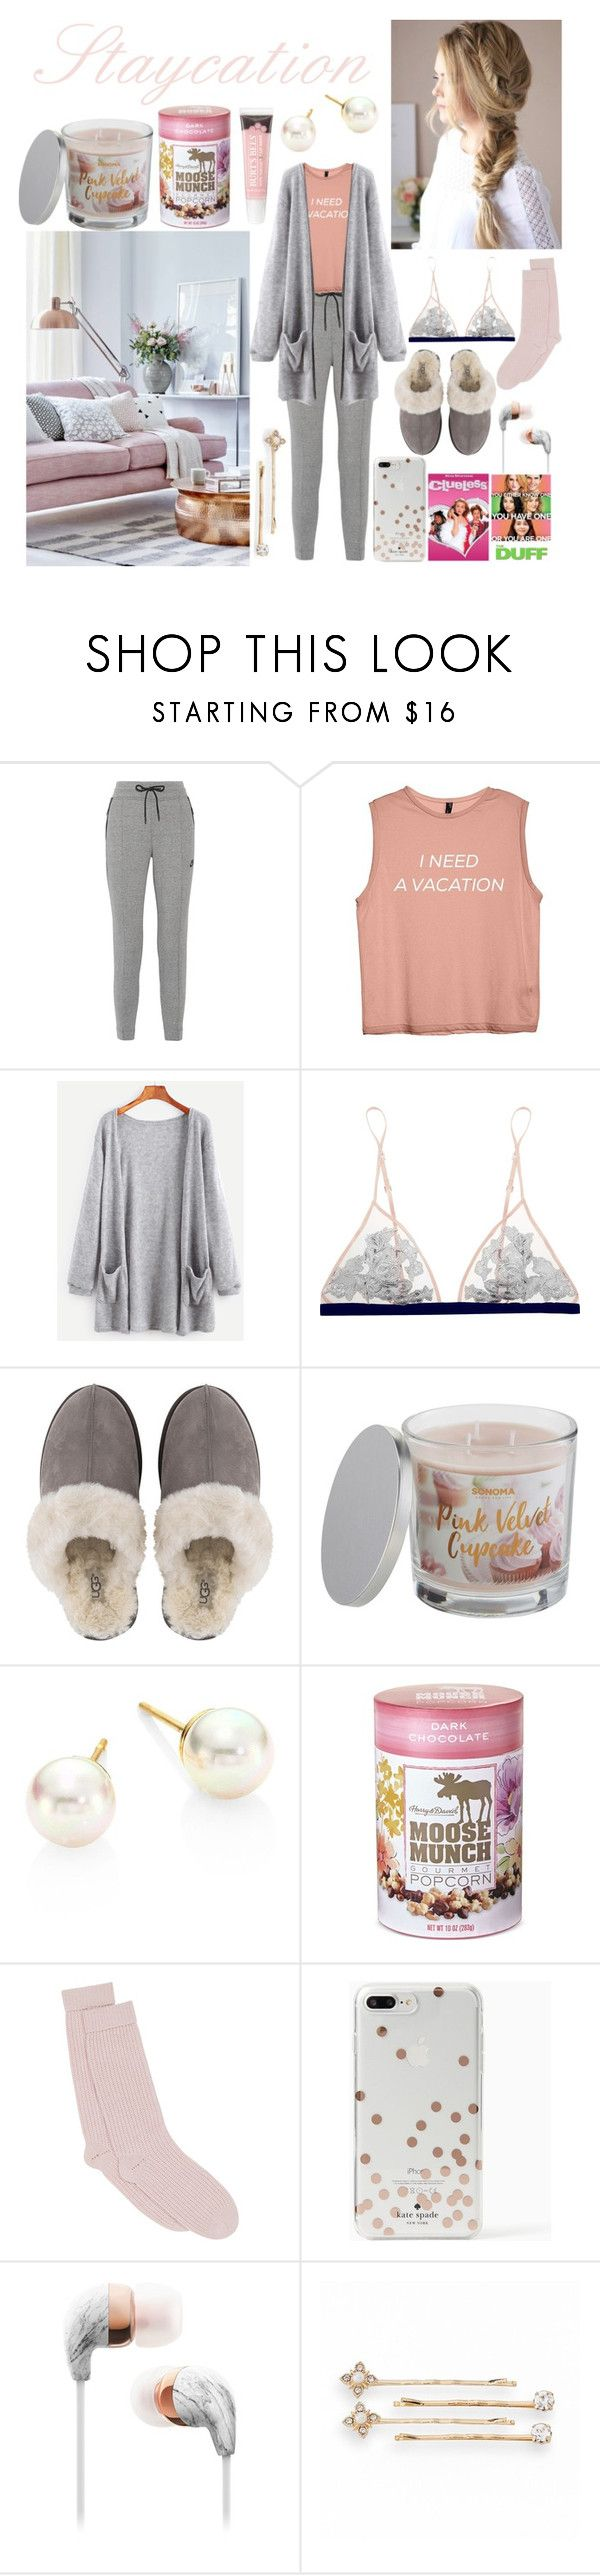 """Staycation"" by dreamscomeincolour ❤ liked on Polyvore featuring NIKE, La Perla, UGG, SONOMA Goods for Life, Majorica, Harry & David, Pepper & Mayne, Kate Spade and LC Lauren Conrad"